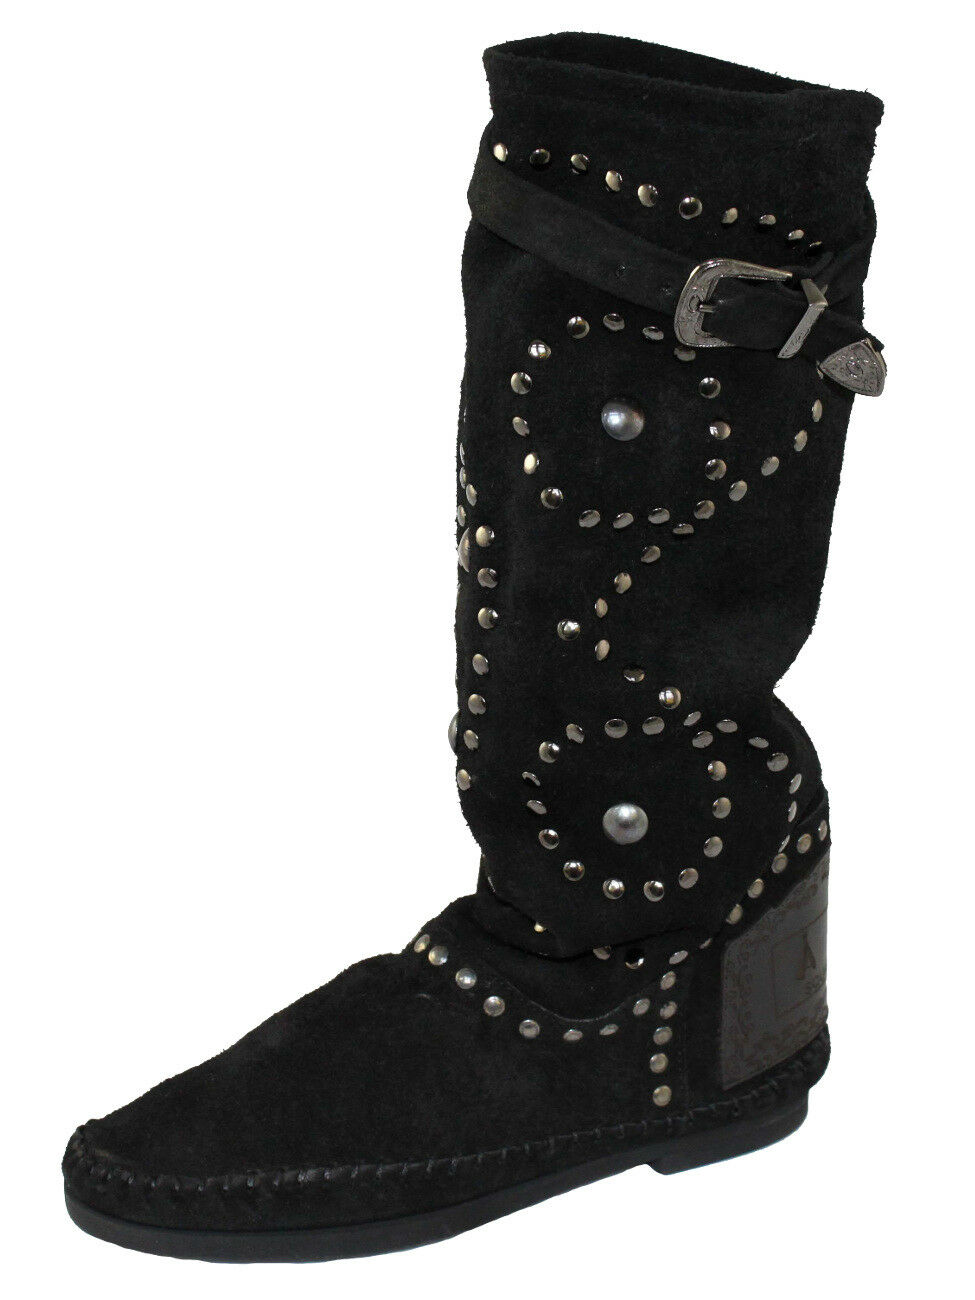 PIAMPIANI Chaussures Mocassins Bottes Boot Boot Boot Cuir Made in Italy taille 39 Indi 1 Noir db7324